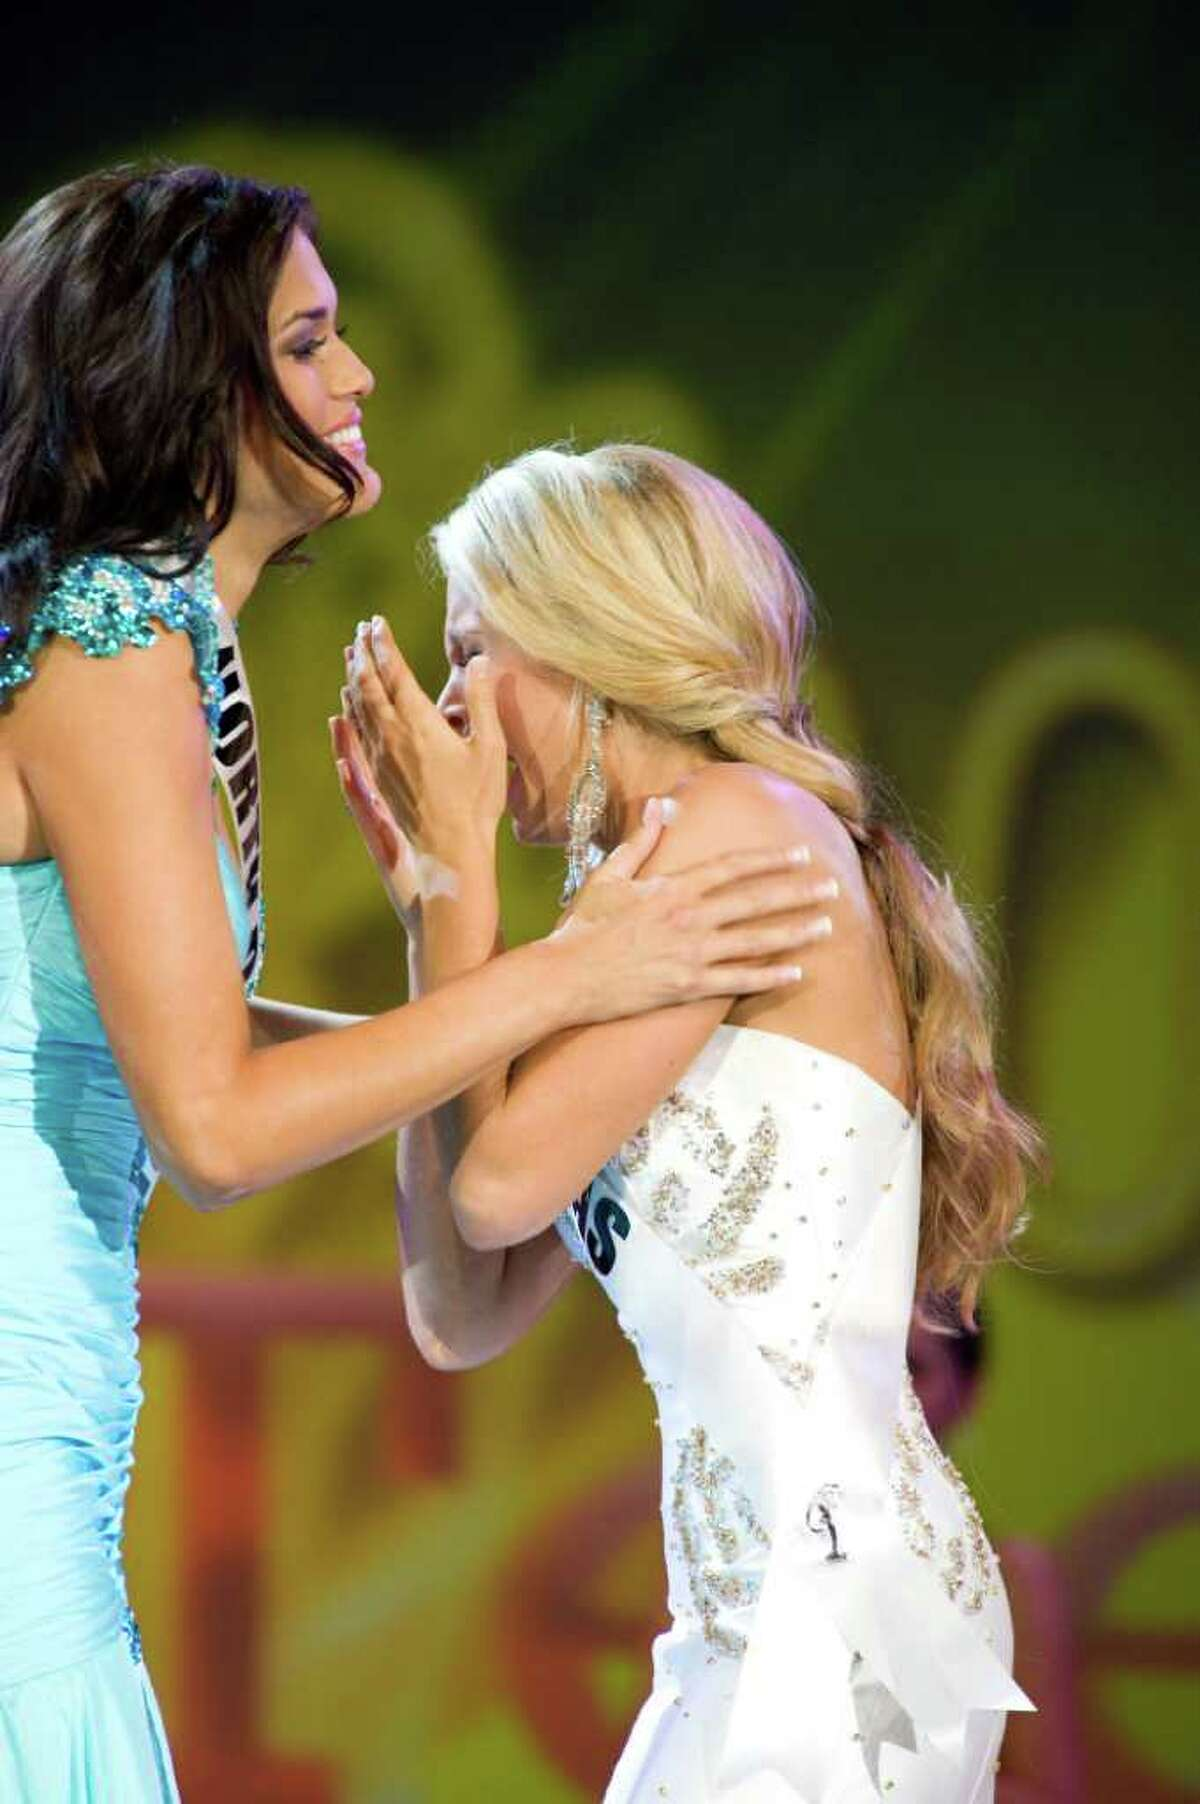 Miss Texas Teen USA 2011, Danielle Doty, reacts as she is named Miss Teen USA 2011. First runner-up Audra Mari, Miss North Dakota Teen USA 2011, is at left.